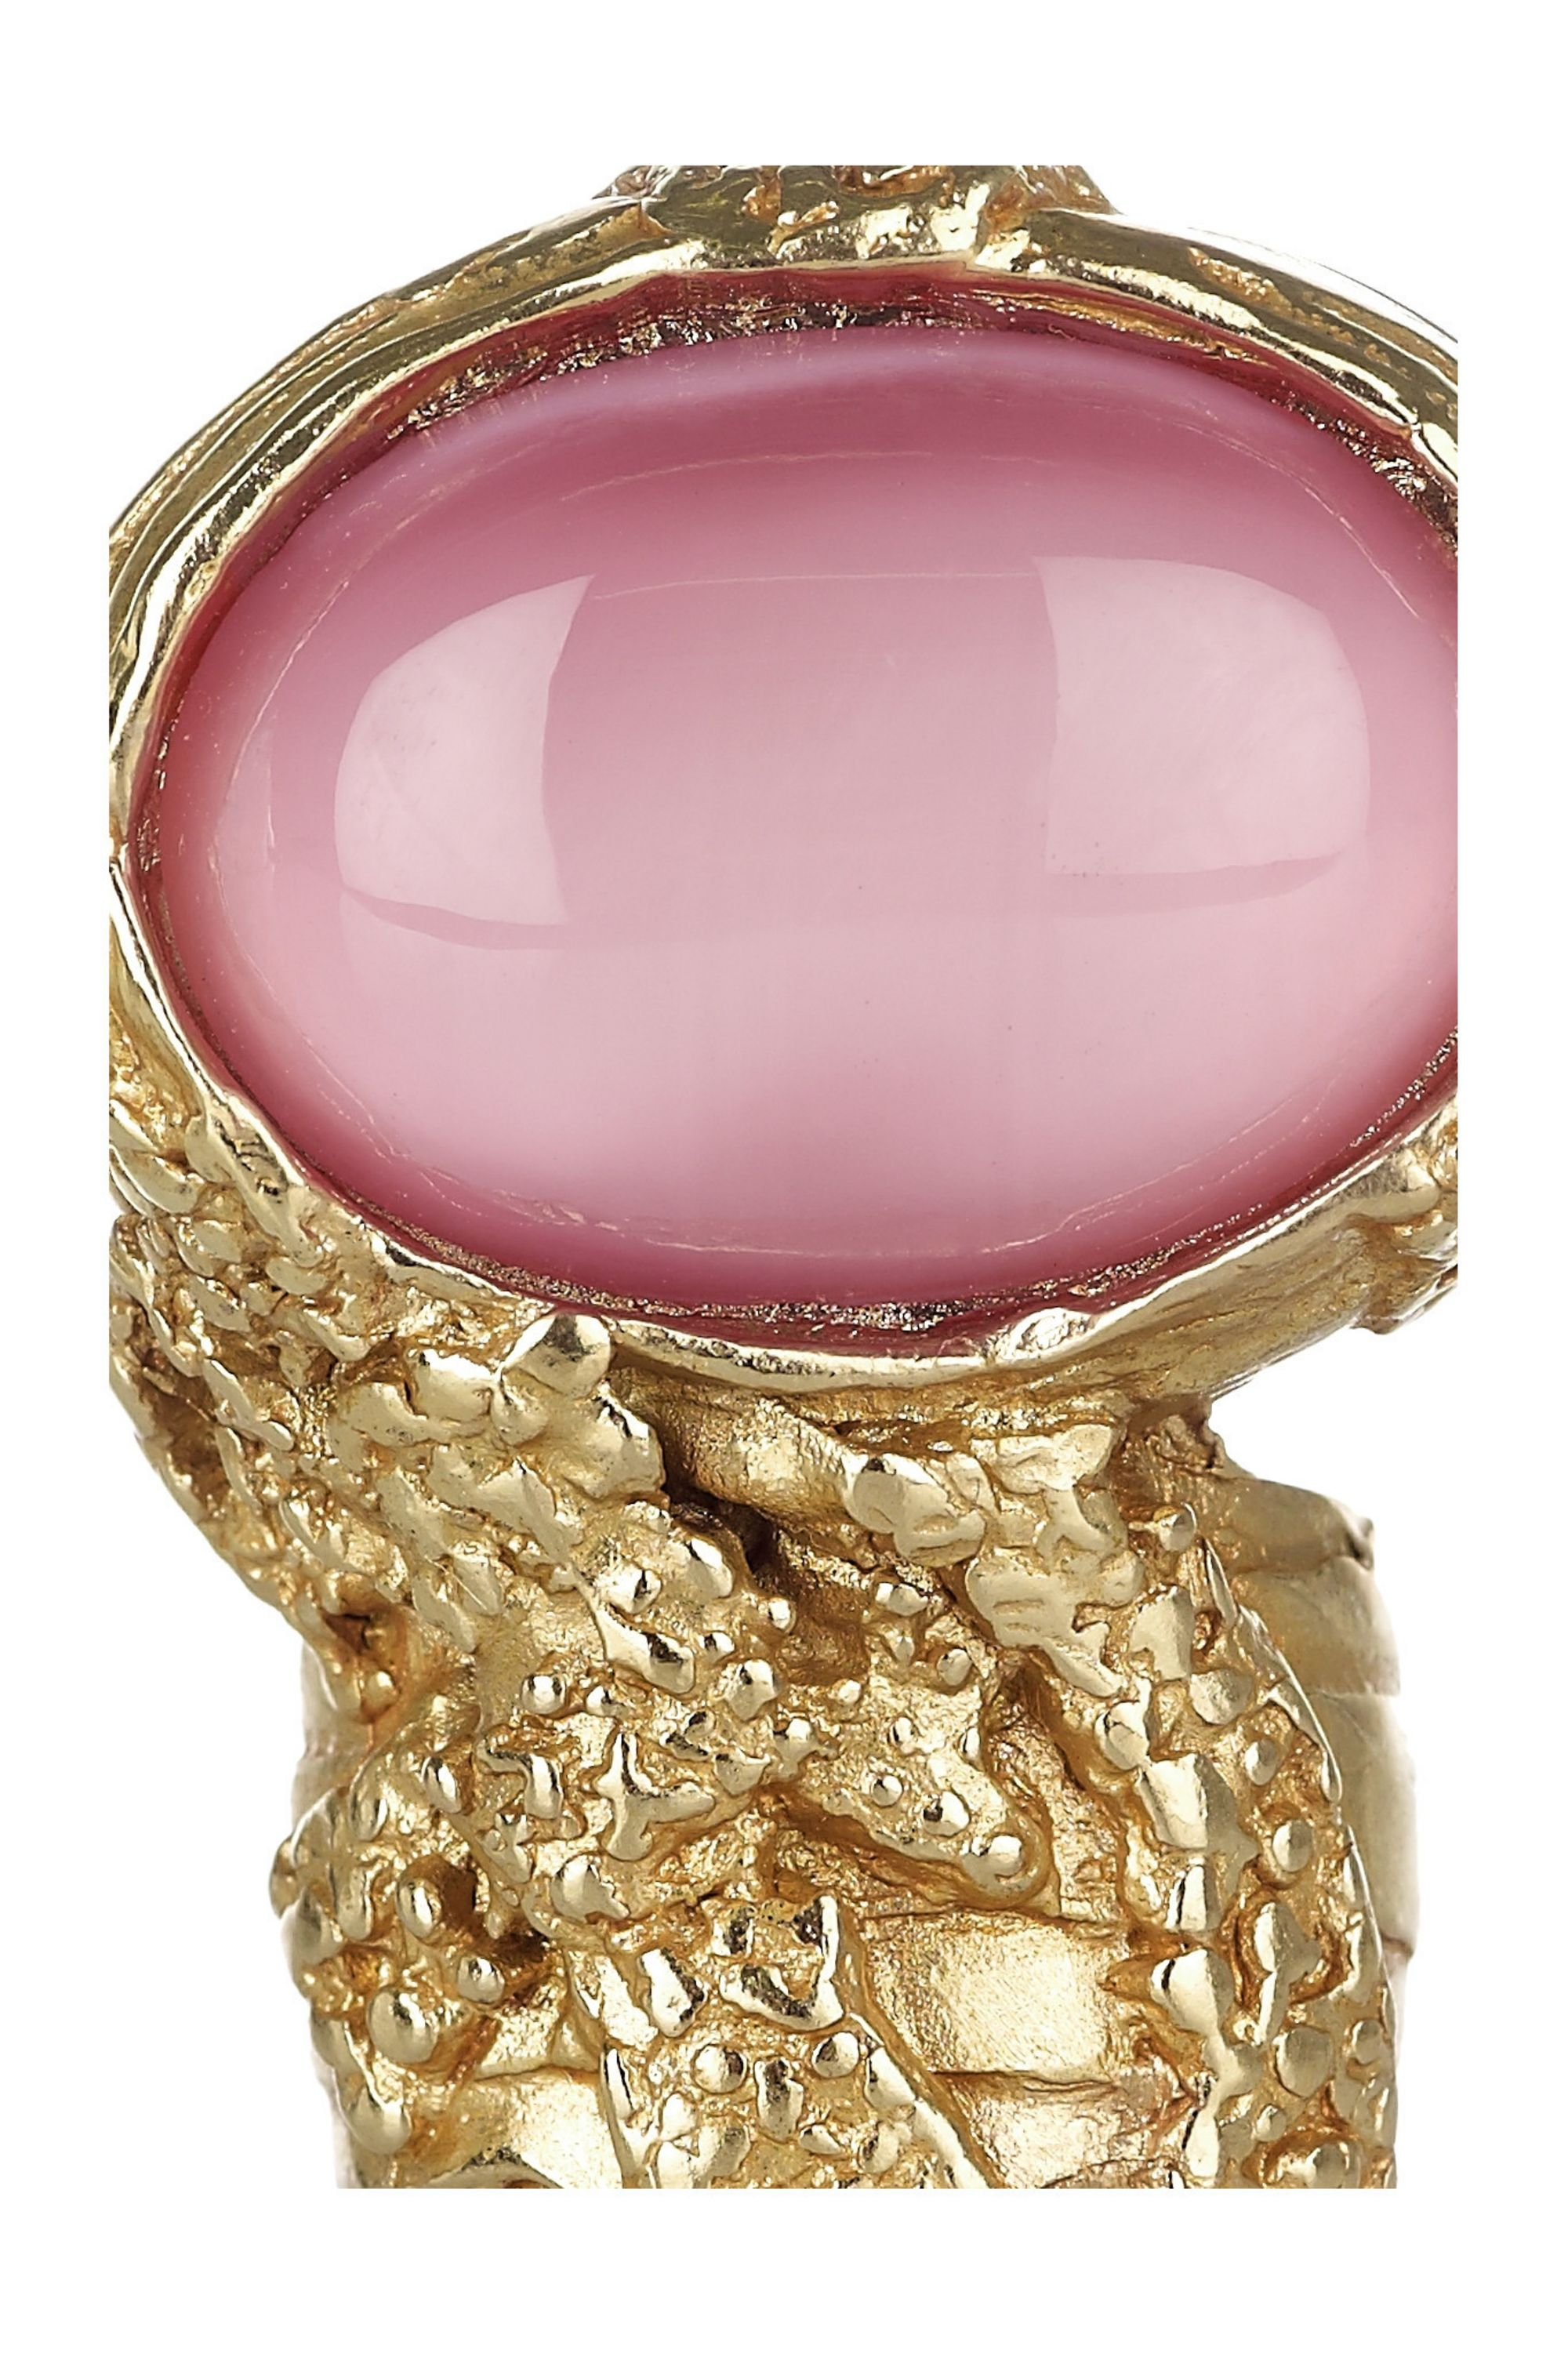 Yves Saint Laurent Arty gold-plated glass ring